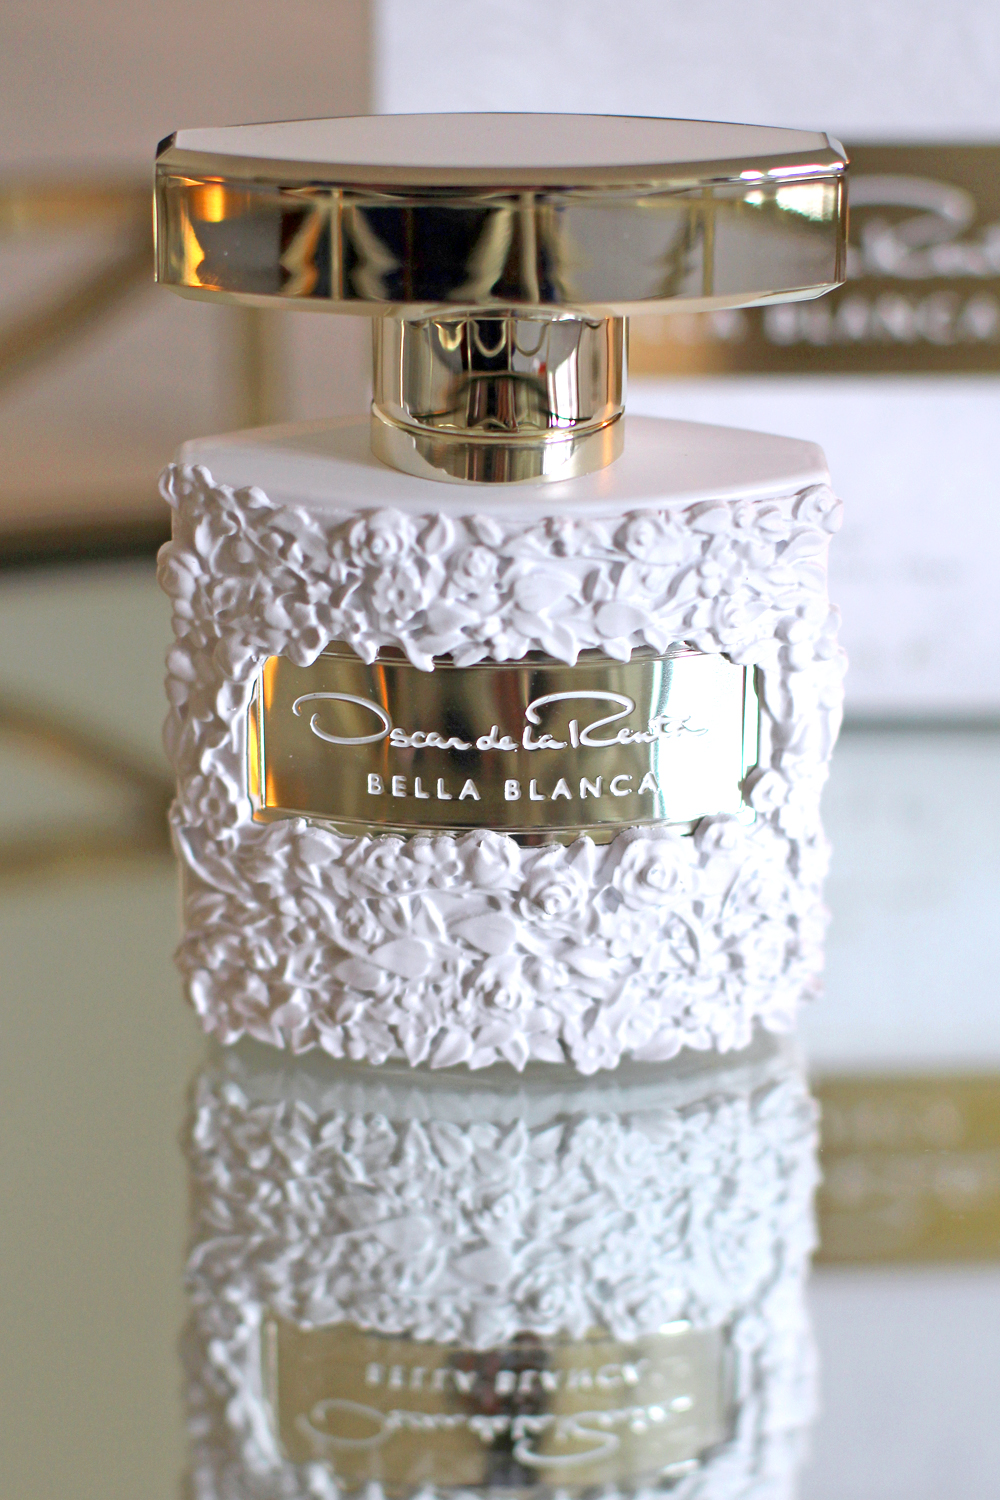 Oscar de la Renta Bella Blanca eau de parfum fragrance - UK beauty blog